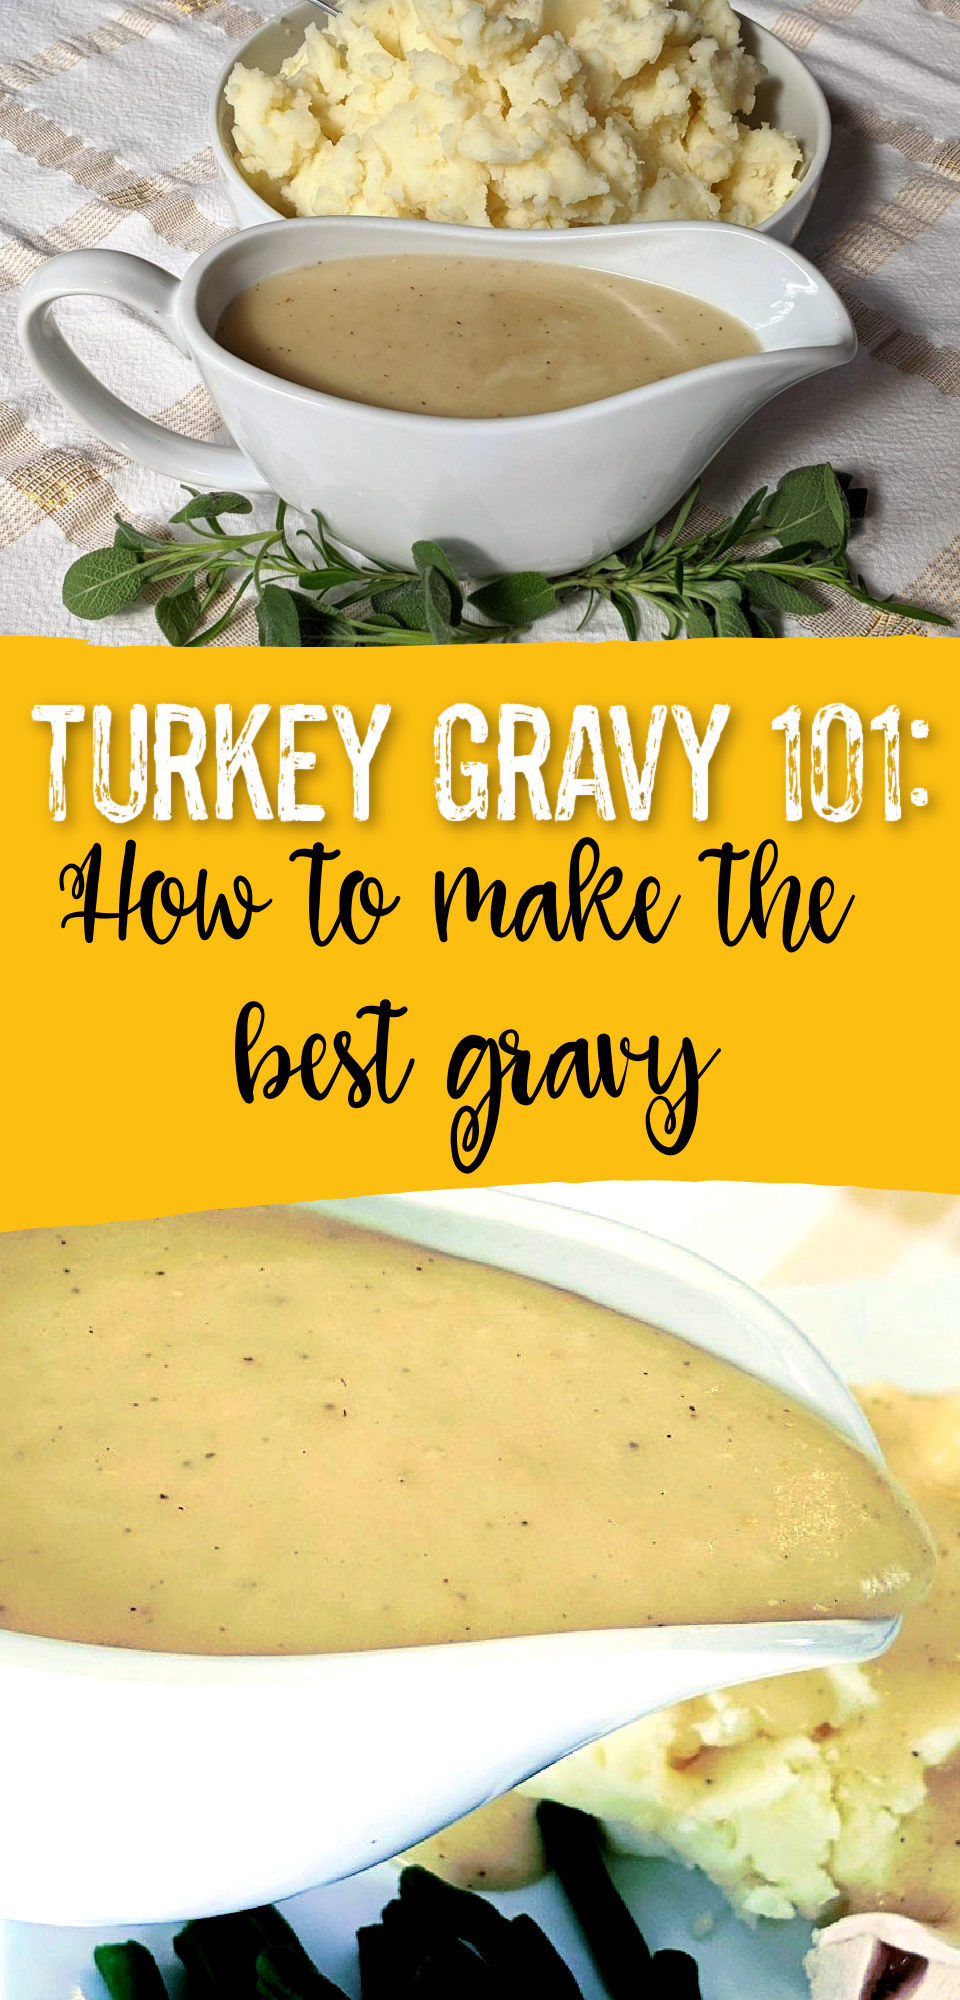 There is nothing quite like a homemade gravy recipe! This recipe will teach you how to make the perfect turkey gravy using drippings. You'll never do gravy another way again! via @simplysidedishes89